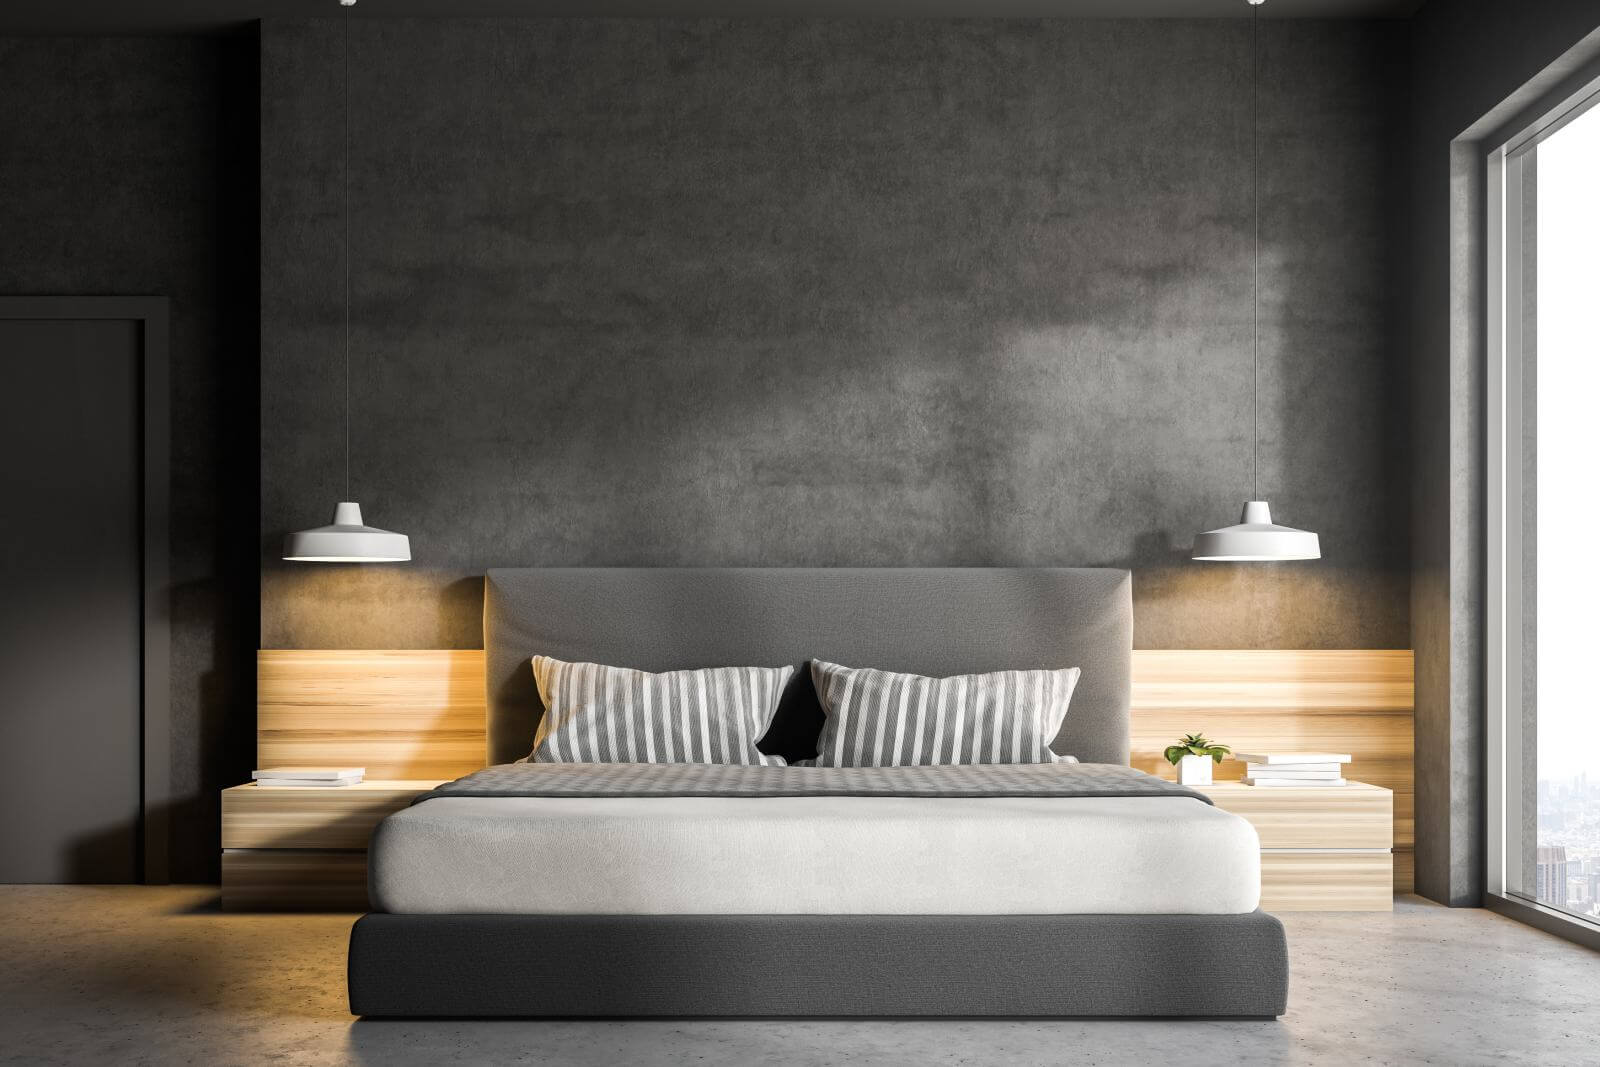 Interior of a modern bedroom with gray walls, a concrete floor, a double bed and two bedside tables. 3d rendering mock up